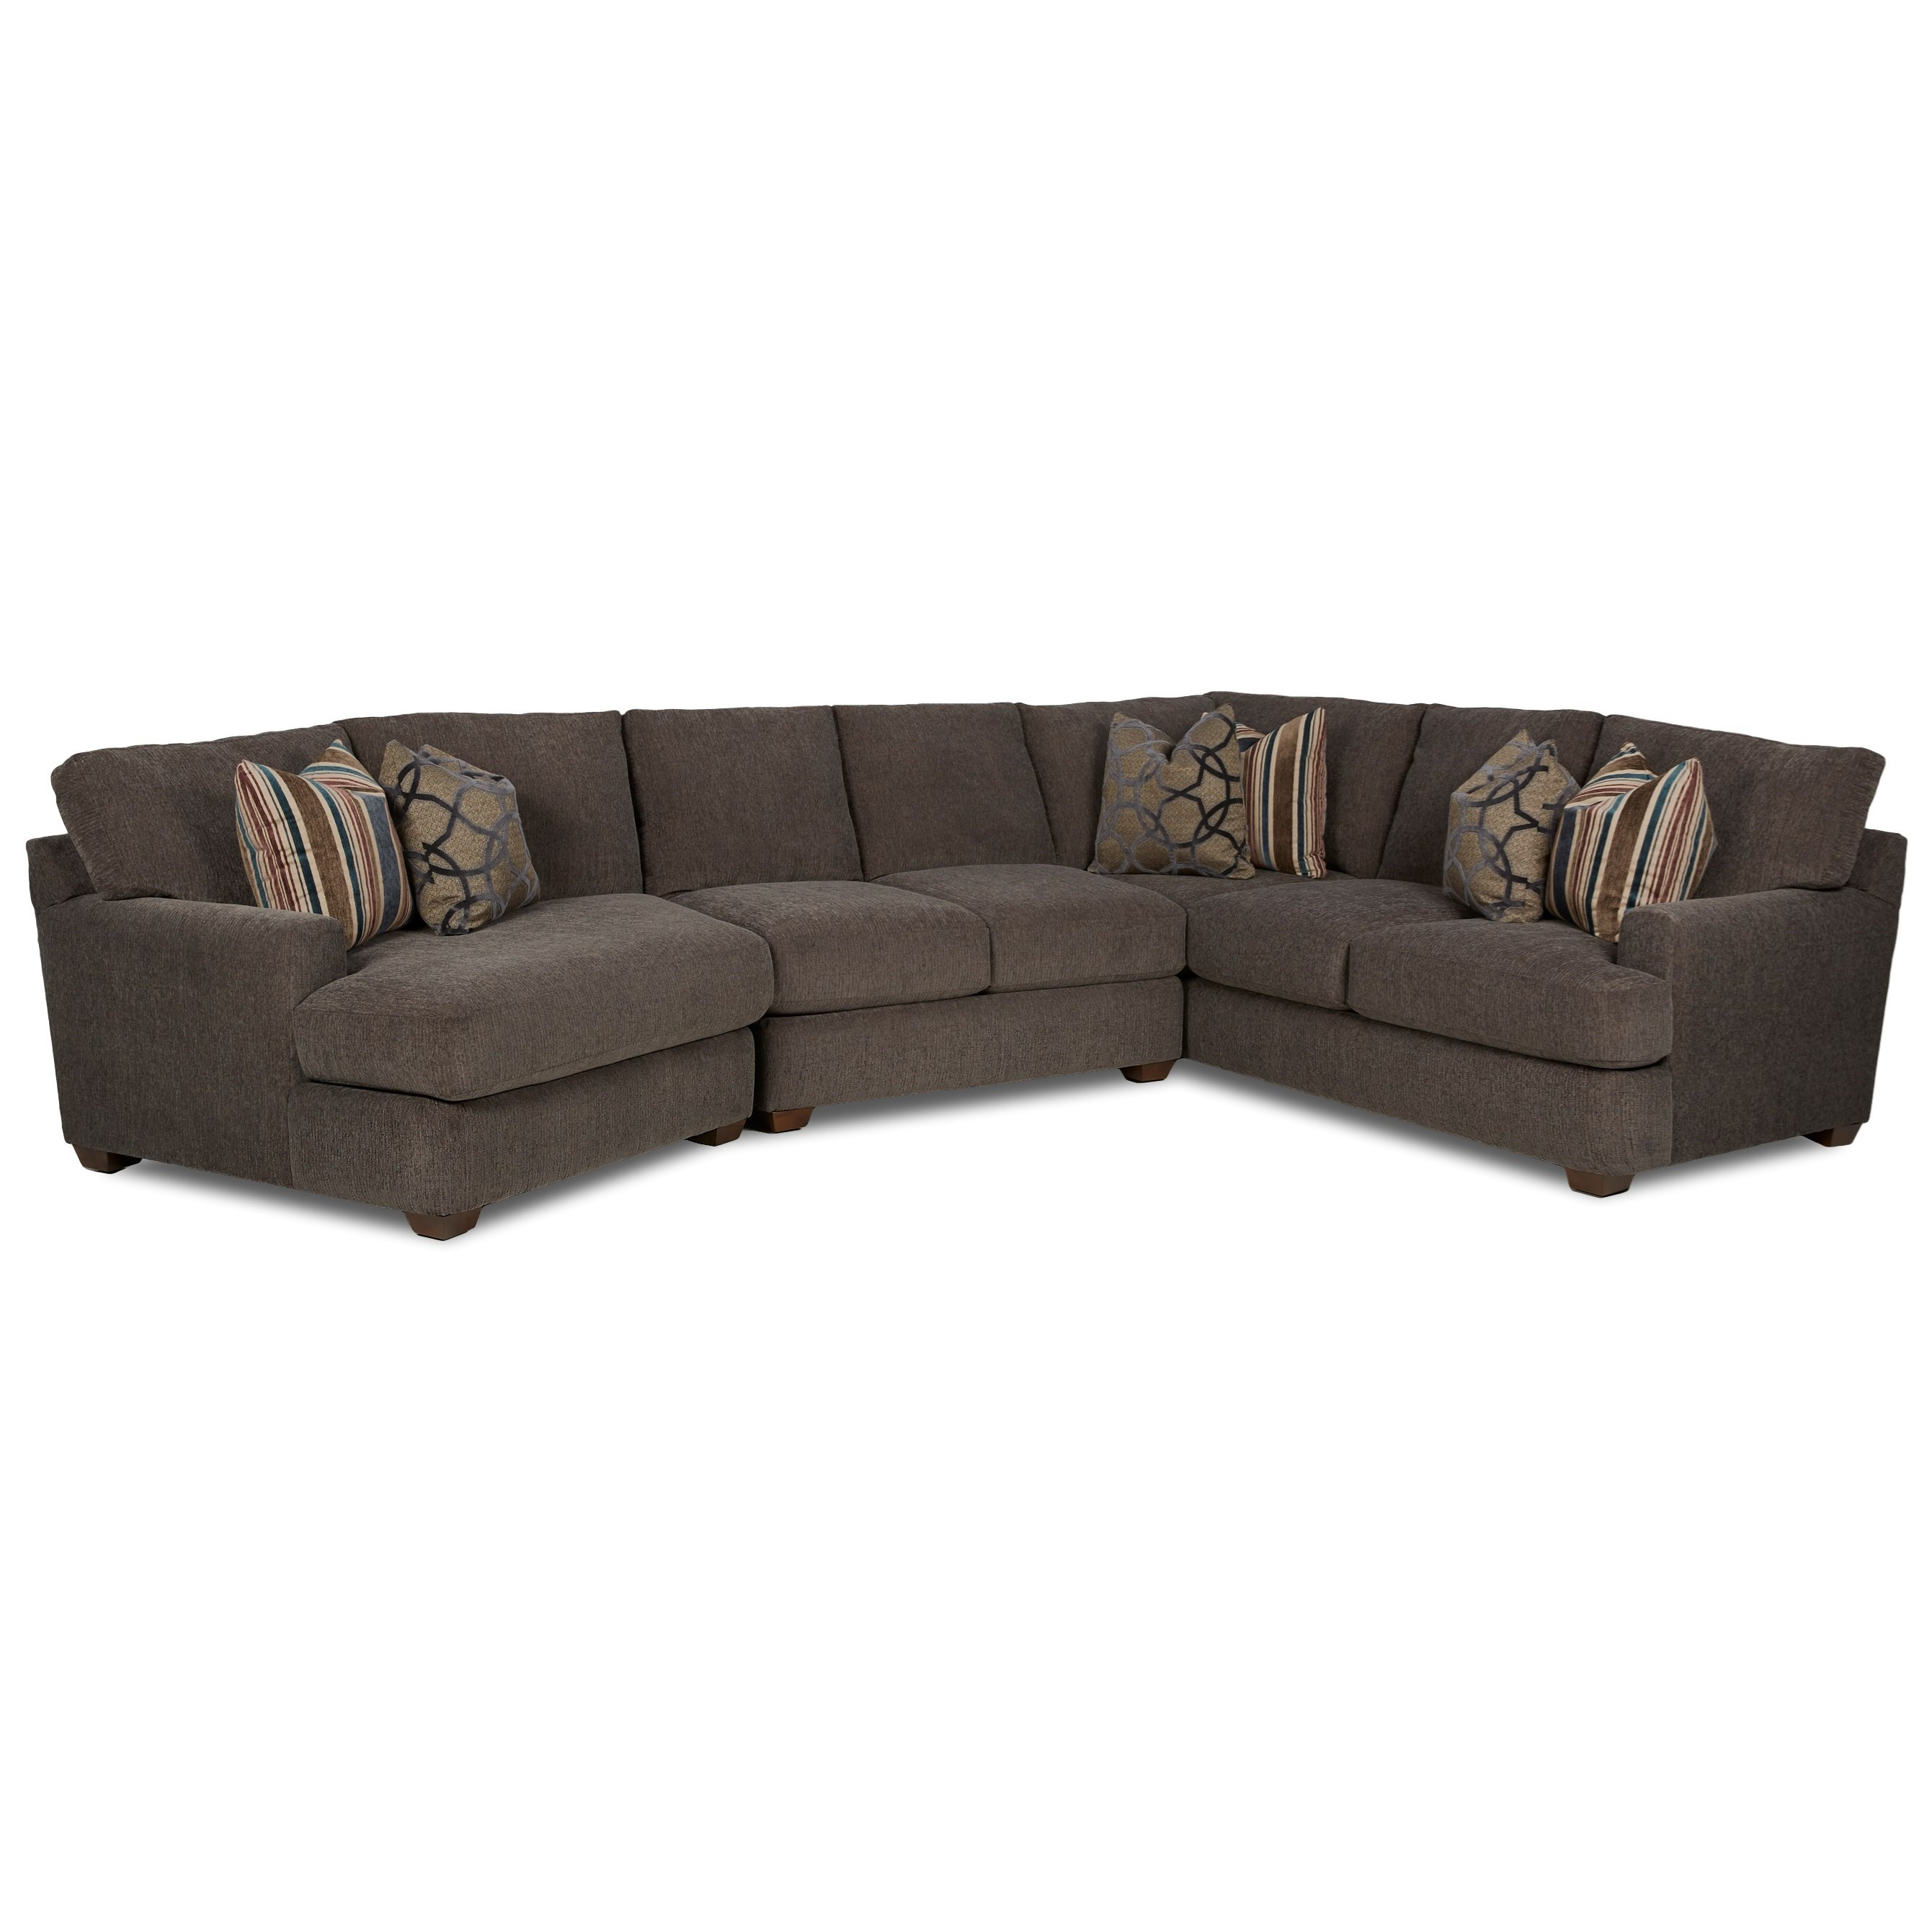 3 Pc Sectional Sofa w/ LAF Cuddler